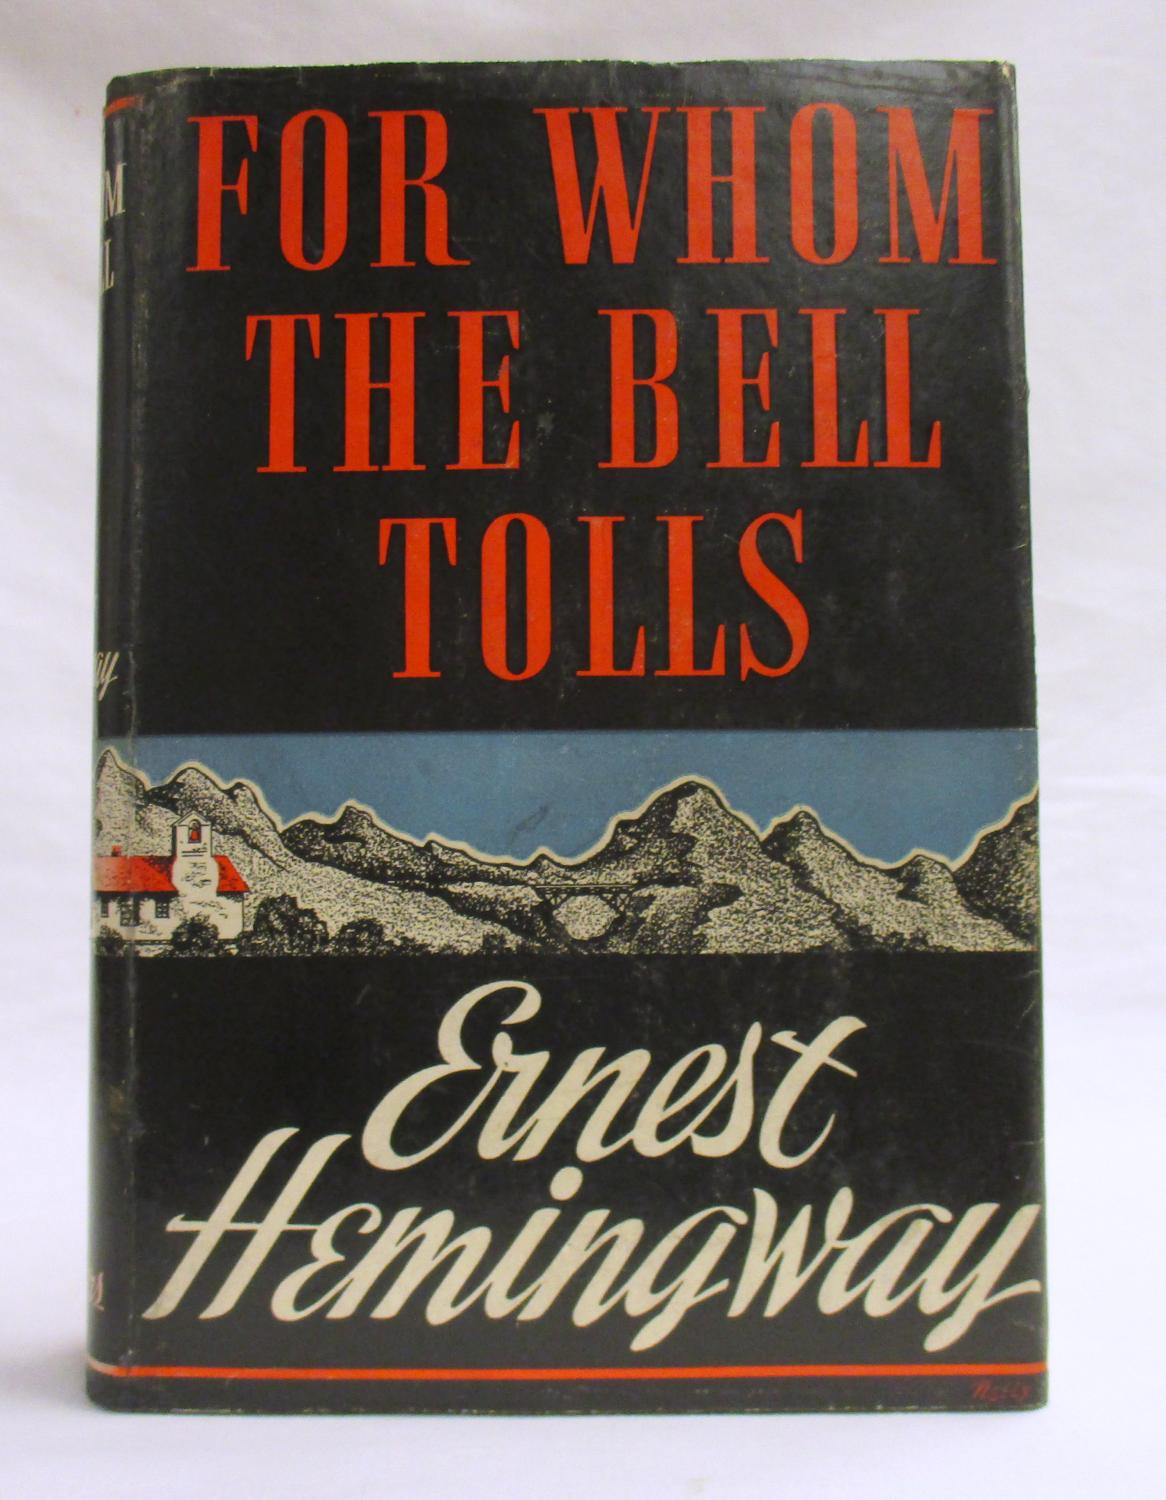 a literary analysis of for whom the bell tolls by ernest hemingway For whom the bell tolls became a book-of-the-month club choice, sold half a million copies within months, was nominated for a pulitzer prize, and as meyers describes it, triumphantly re-established hemingway's literary reputation.